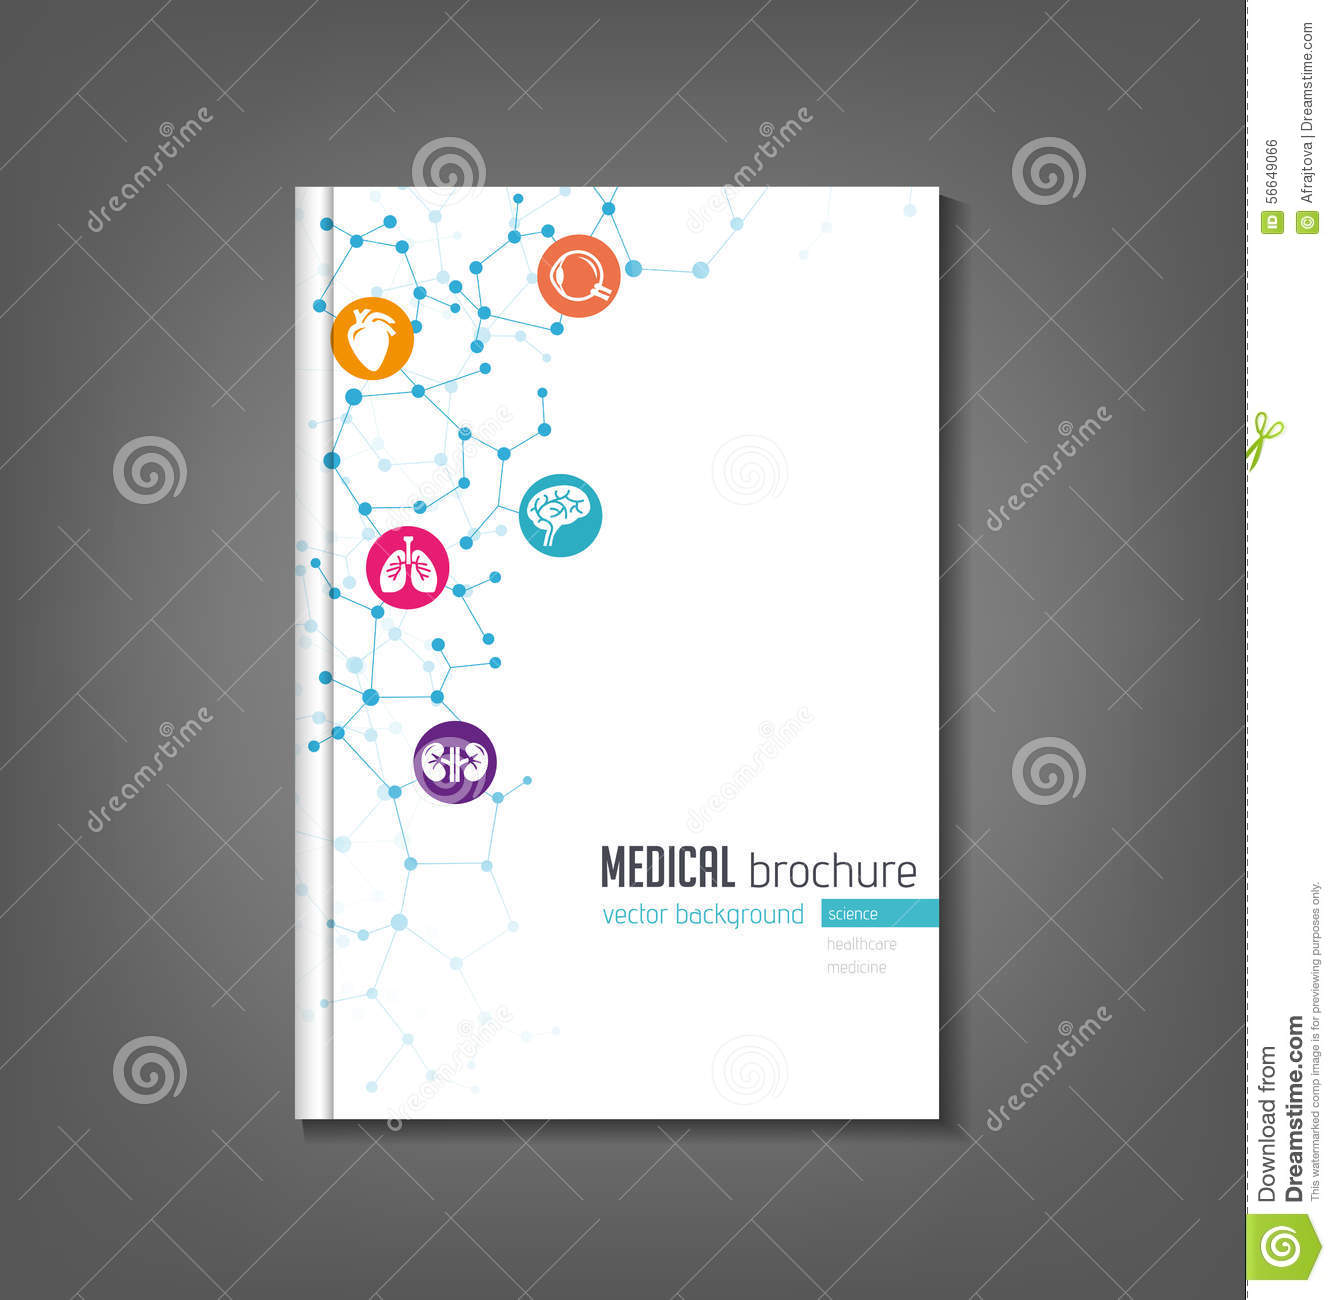 Medical Brochure Template Vector Image 56649066 – Medical Brochure Template